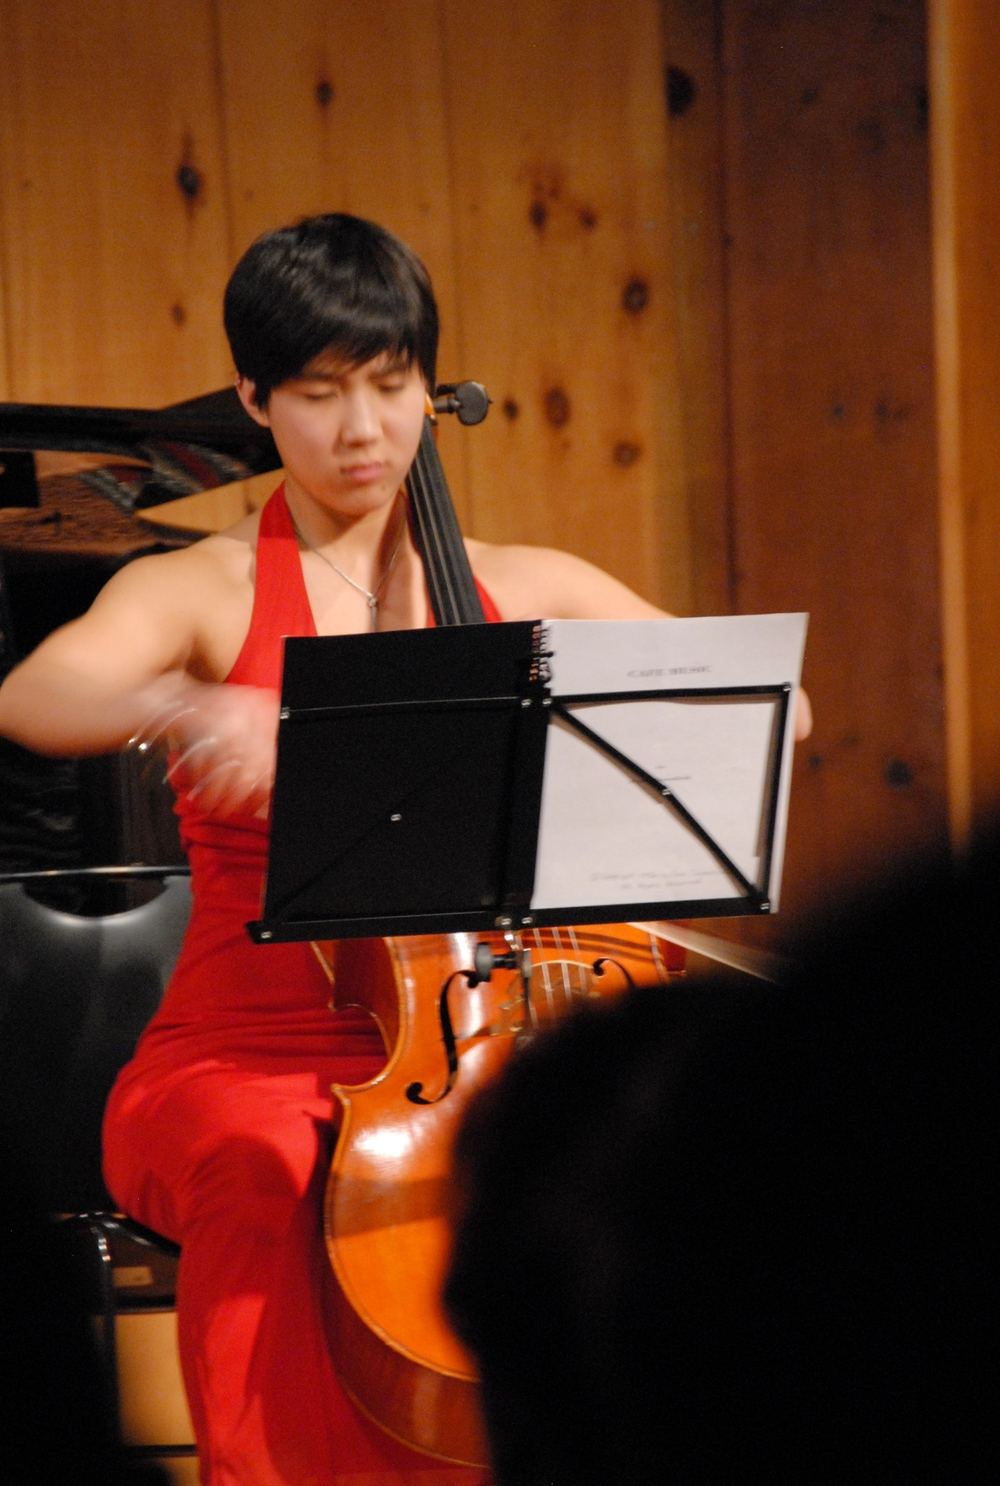 Cellist Courtney Kaita performs with soul